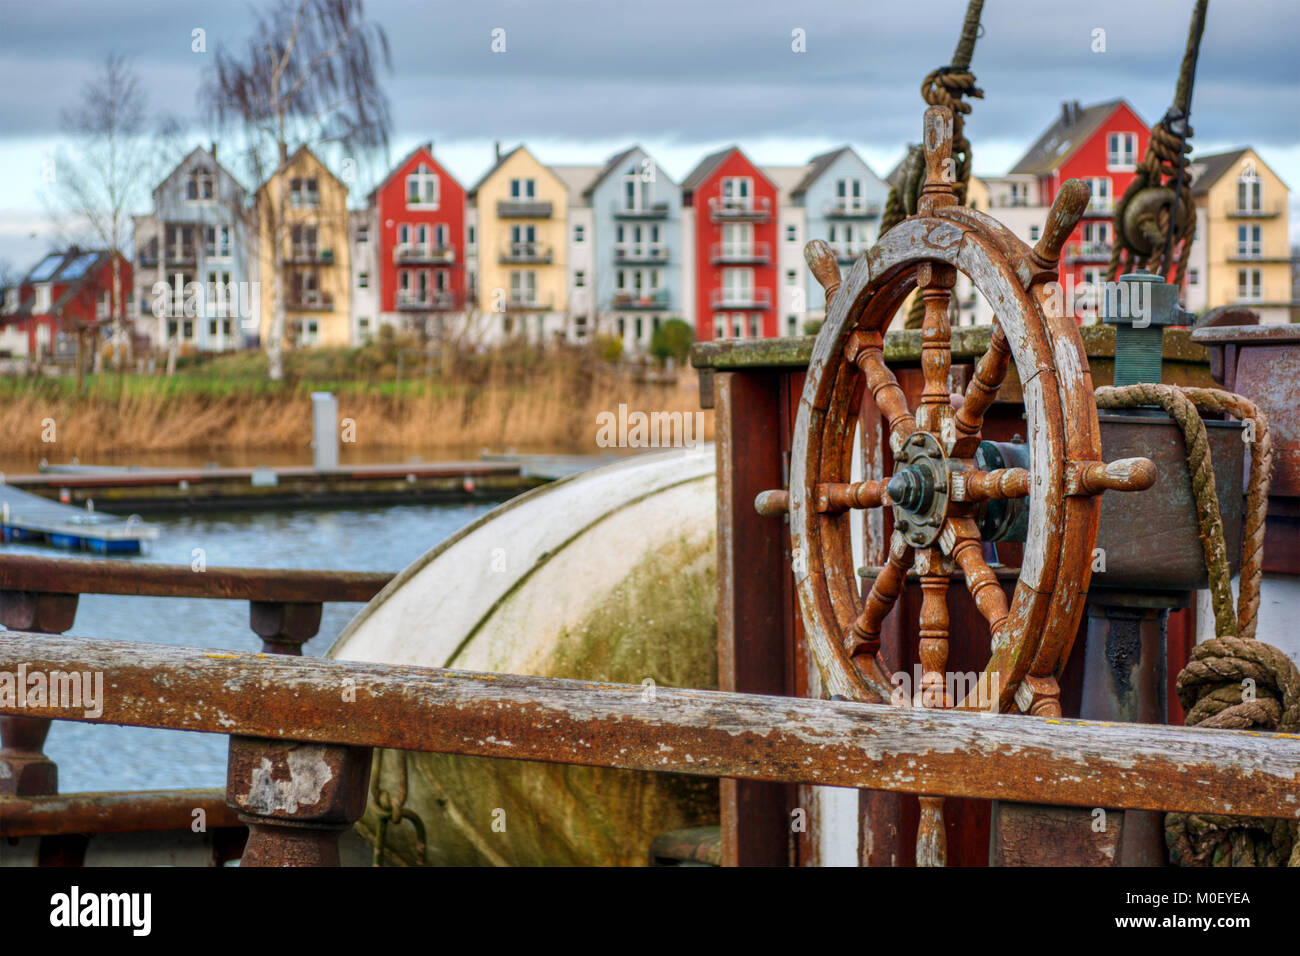 Steering wheel of an old vessel in Greifswald (Germany), HDR-technique - Stock Image